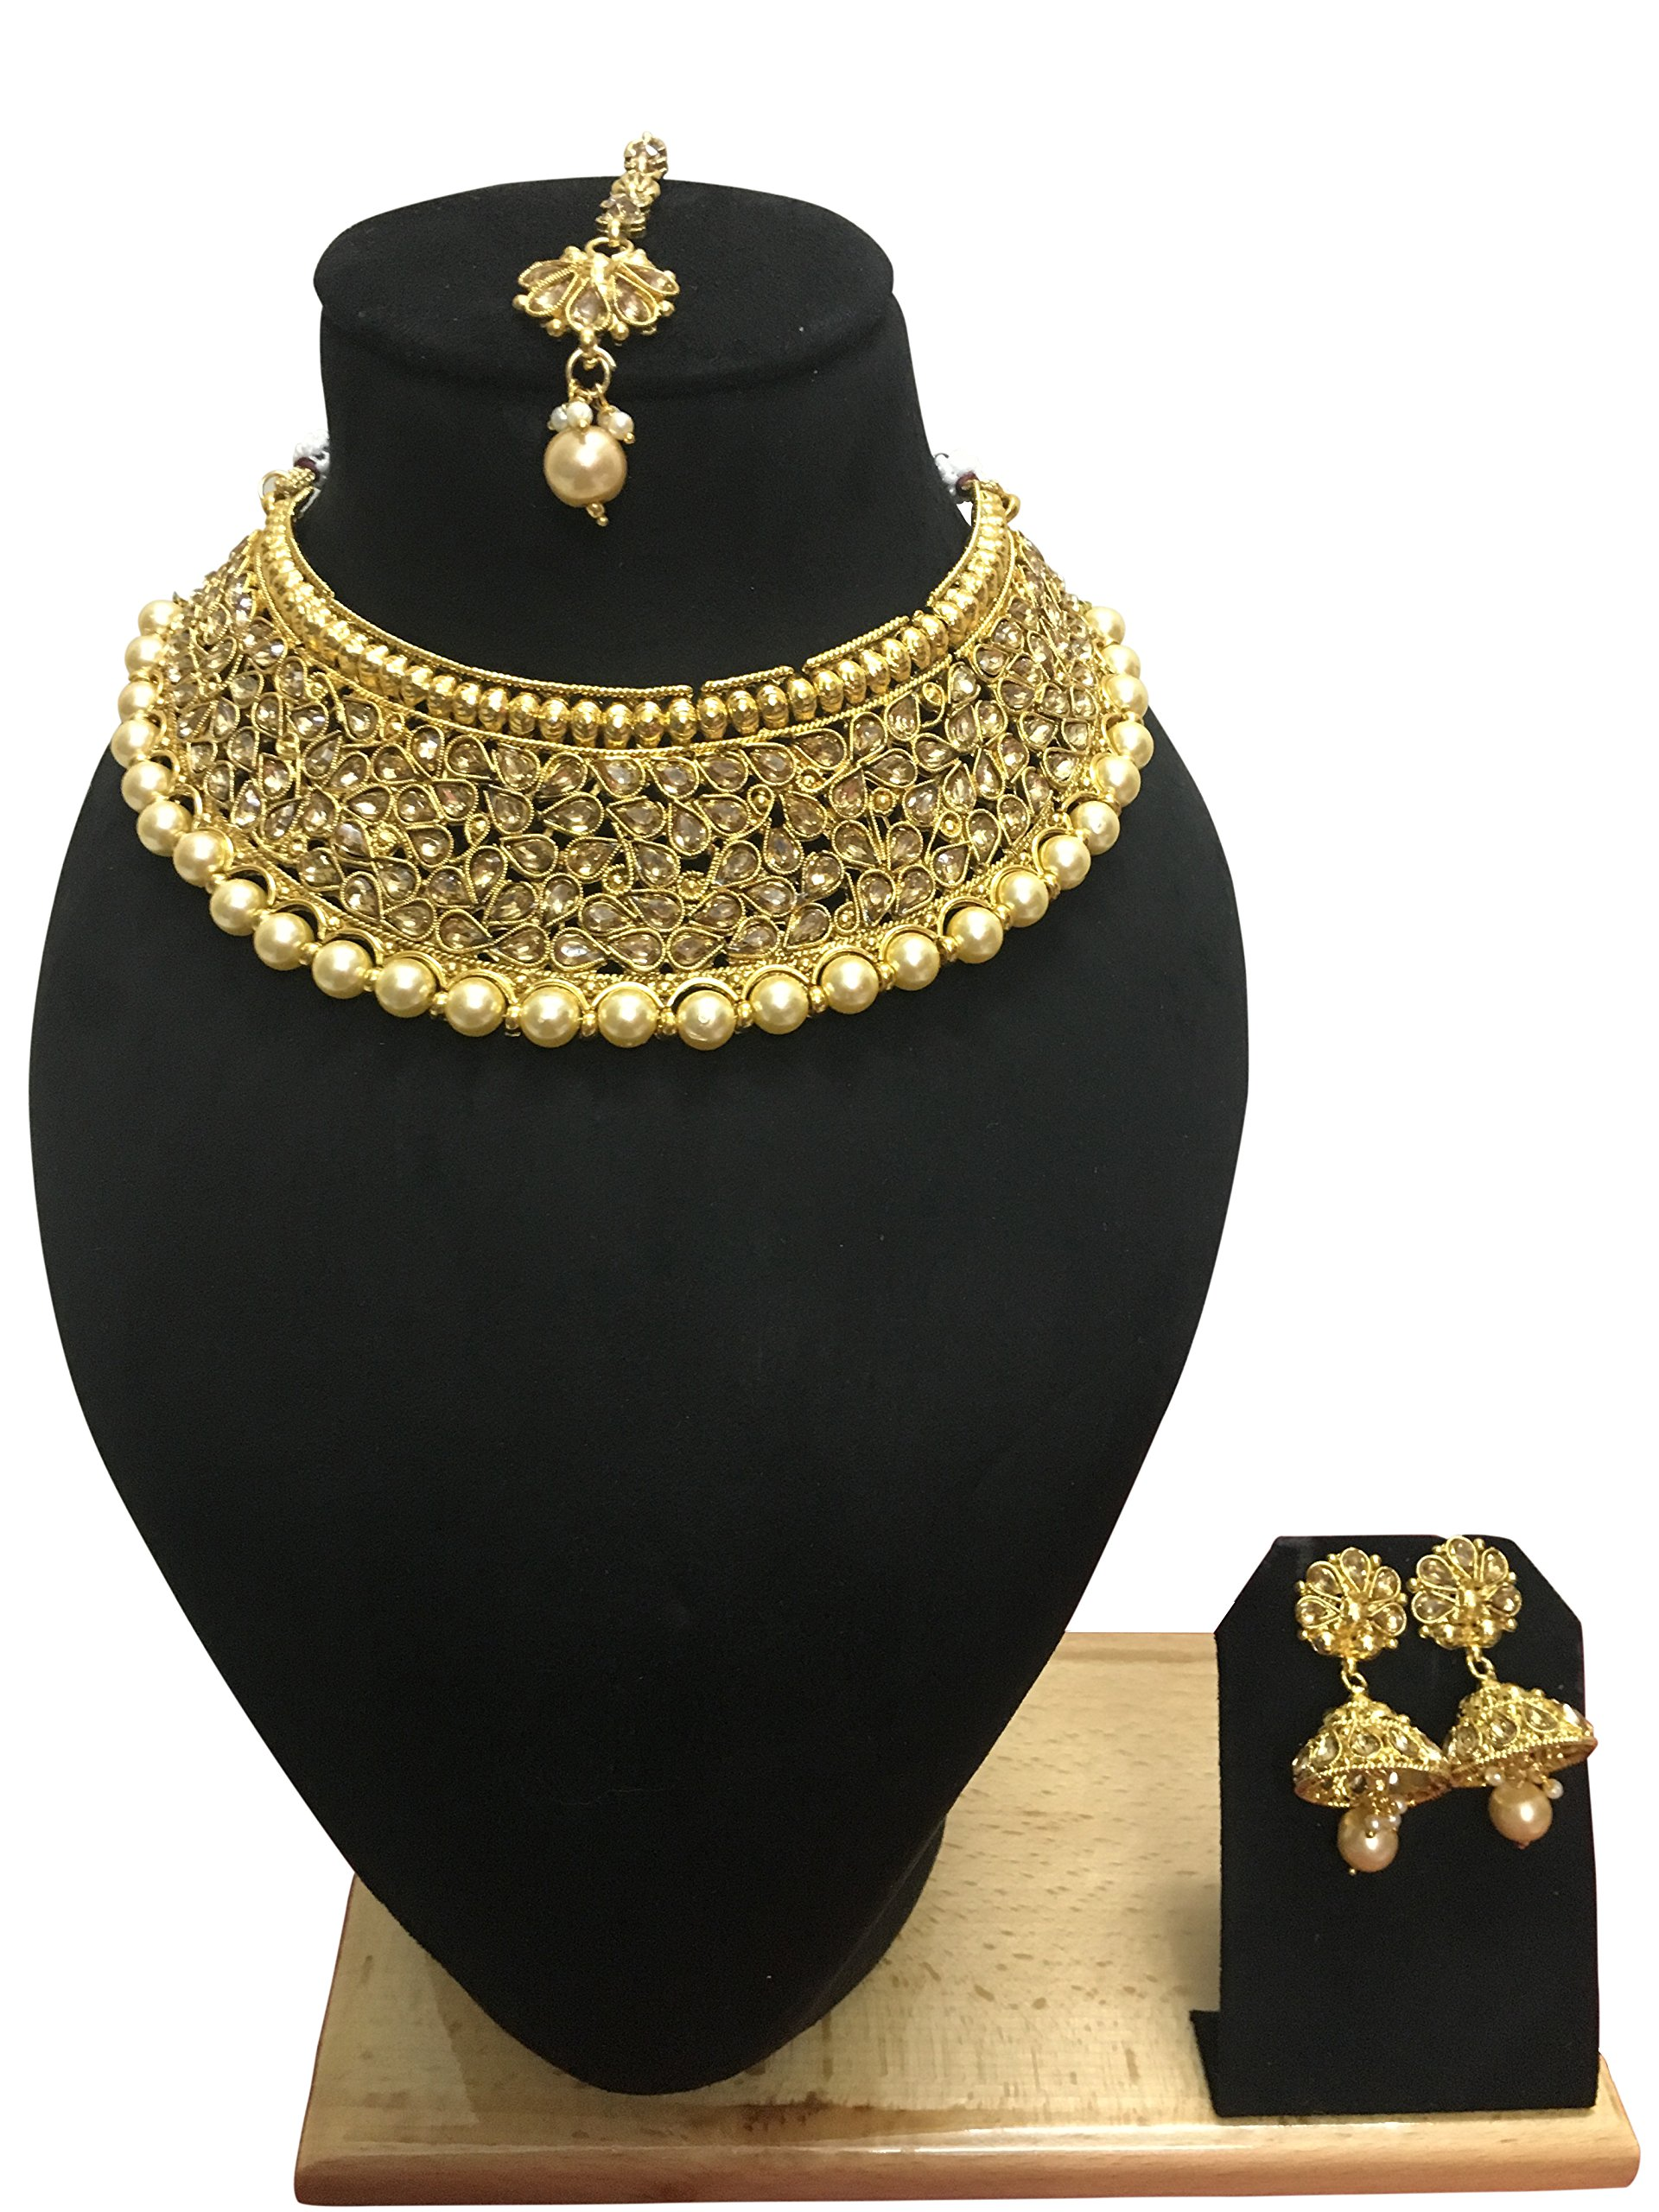 CROWN JEWEL Indian Bollywood Style Gold Plated Wedding Fashion Bridal Jewelry Necklace Earrings Set For Women (Gold)